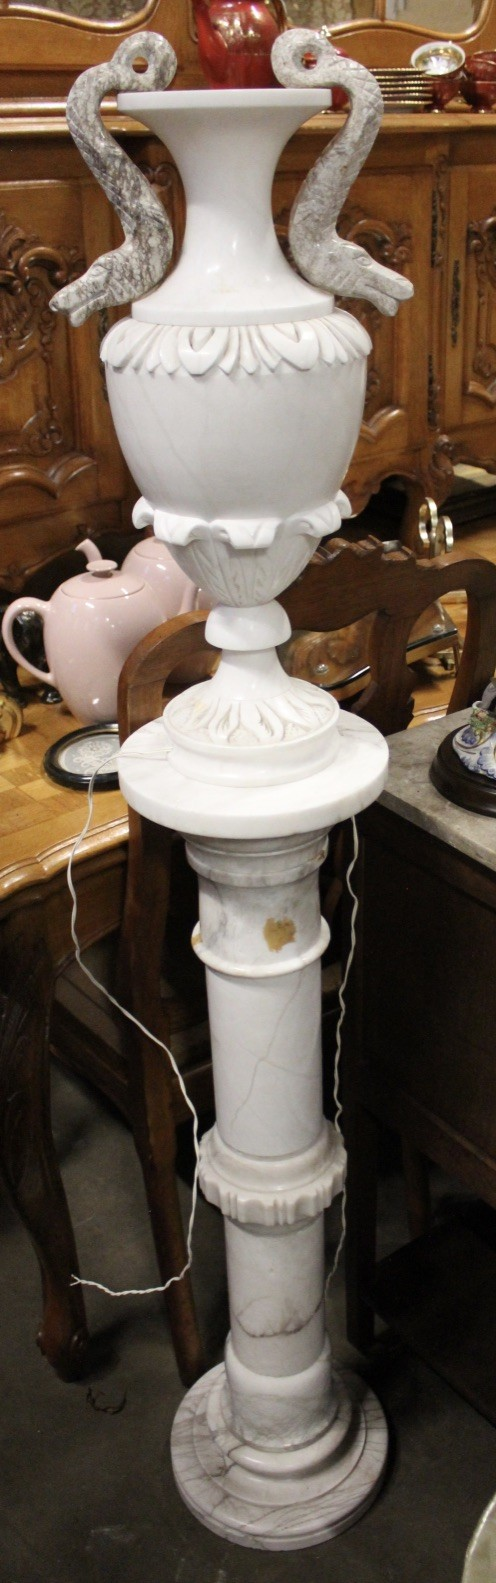 Italian white marble and alabaster urn lamp on pedestal.